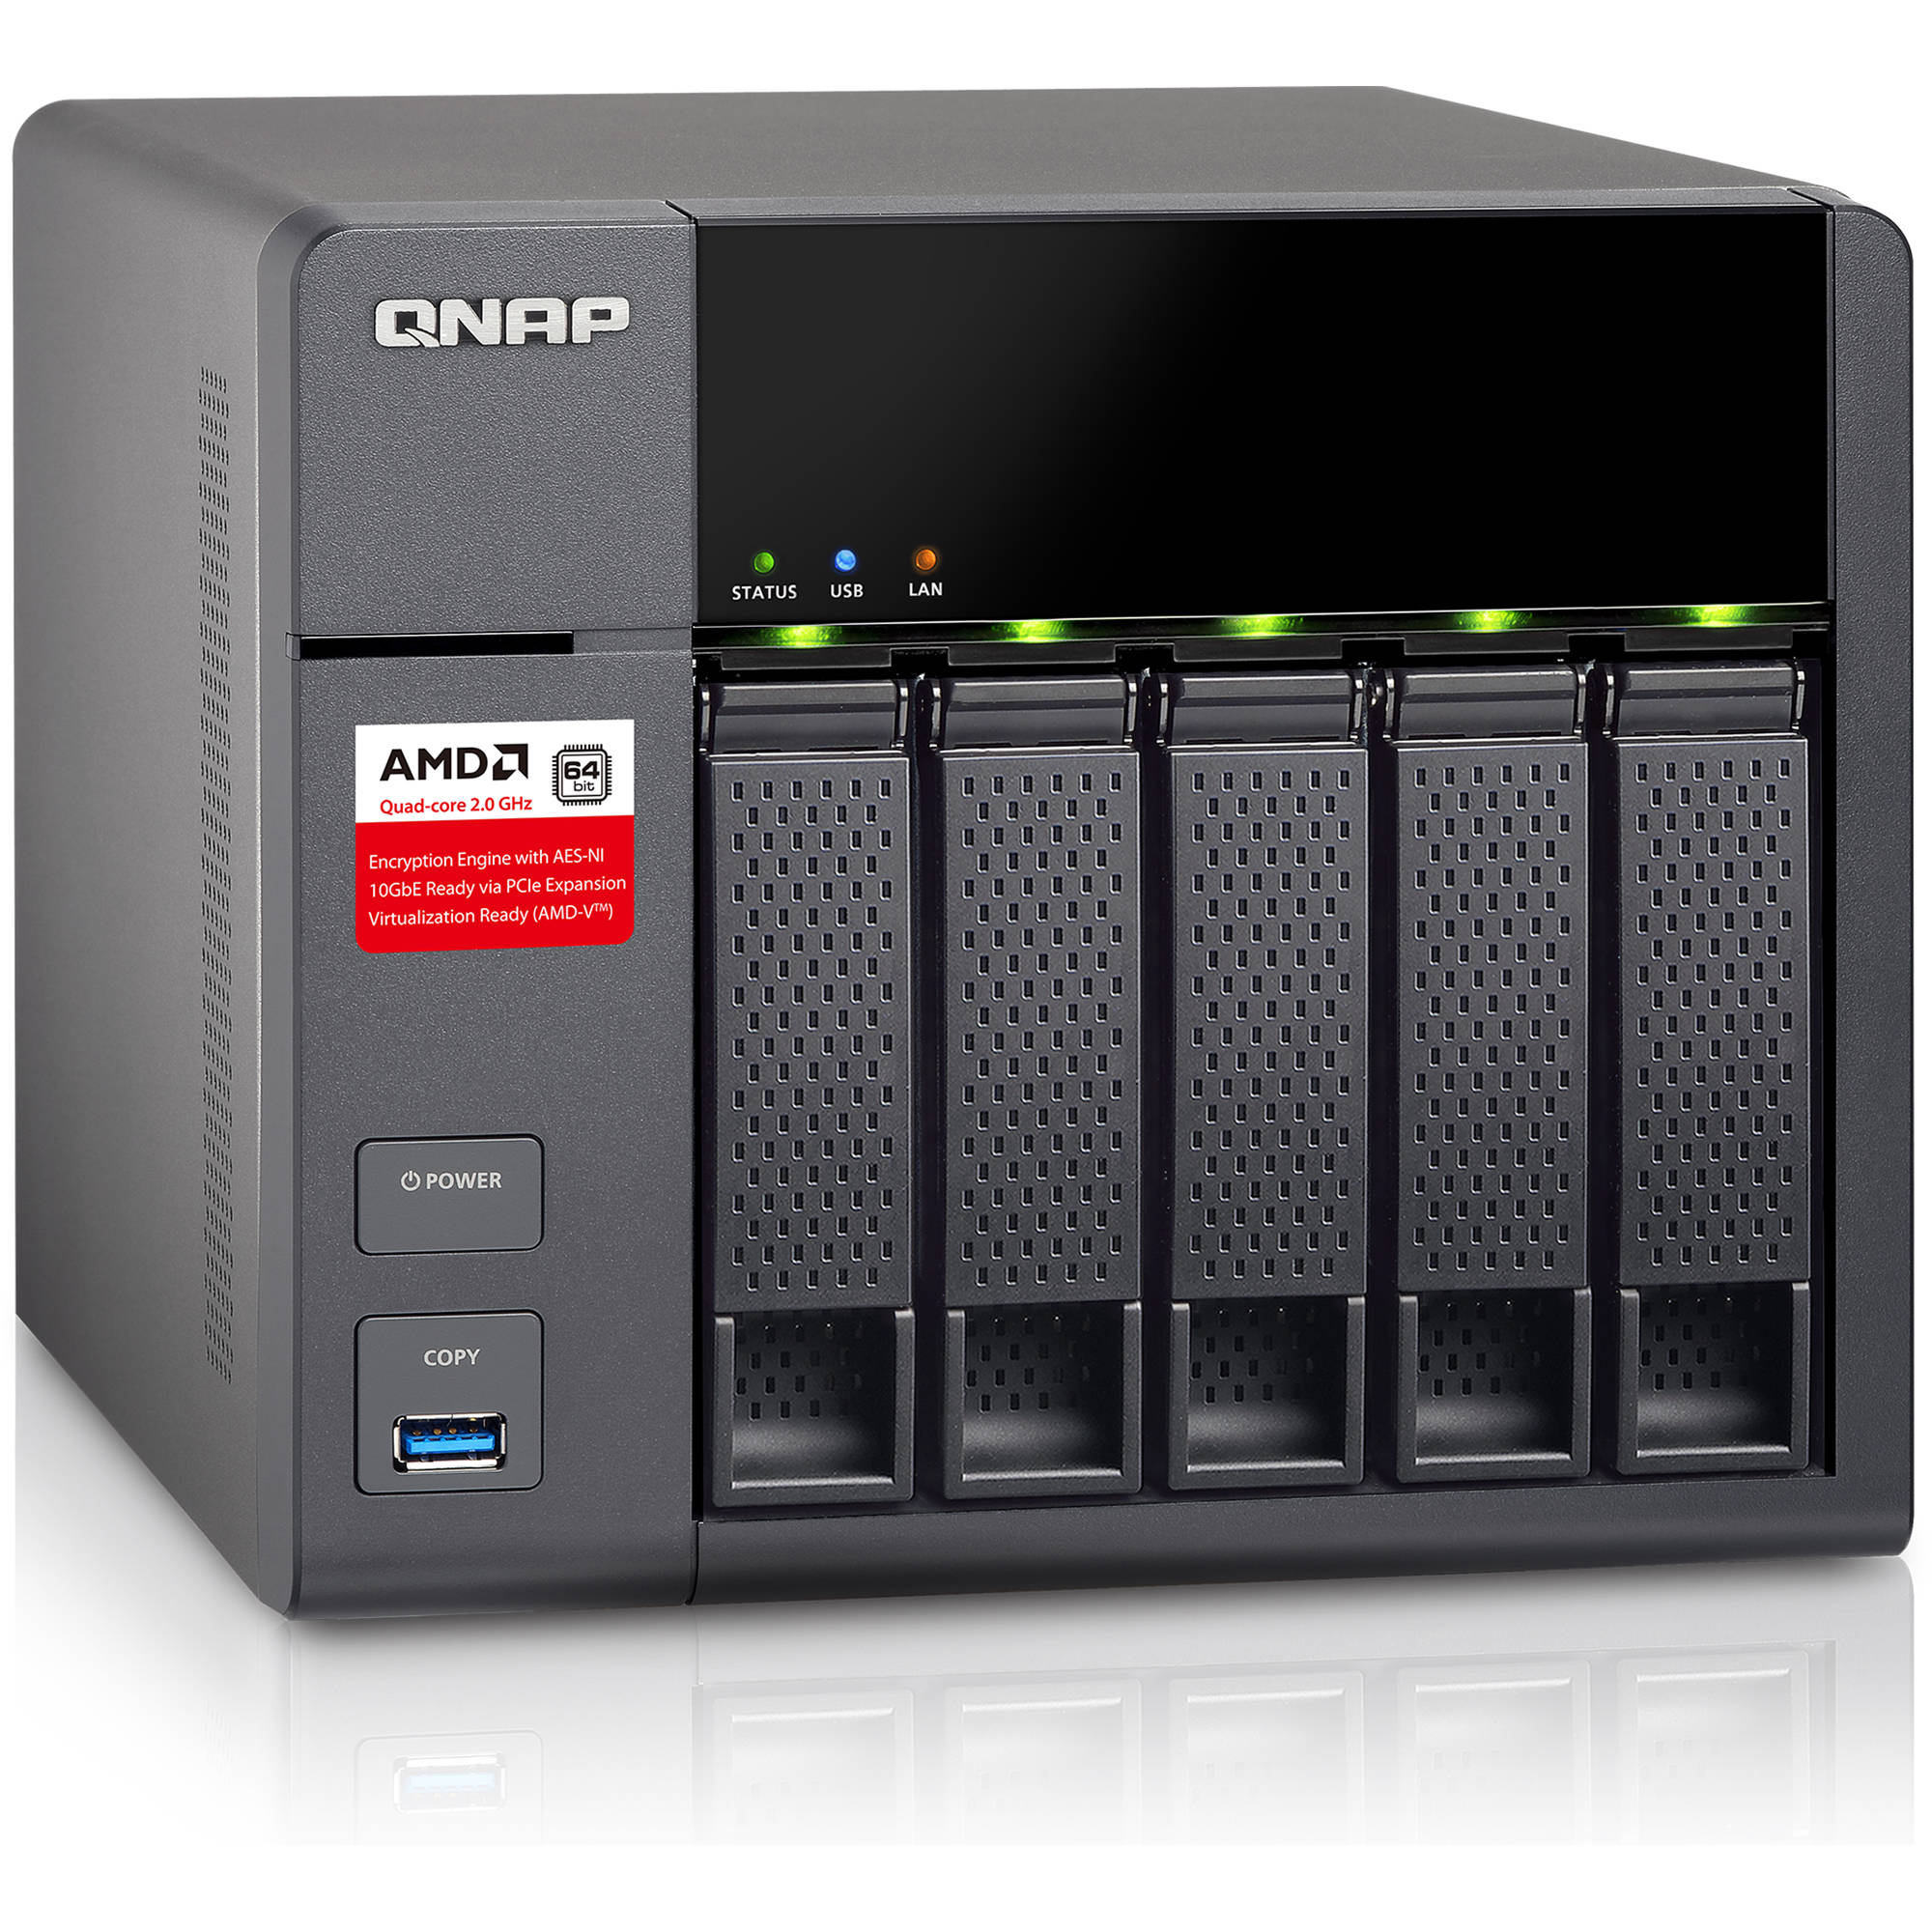 QNAP TS-563 5-Bay Business NAS Enclosure